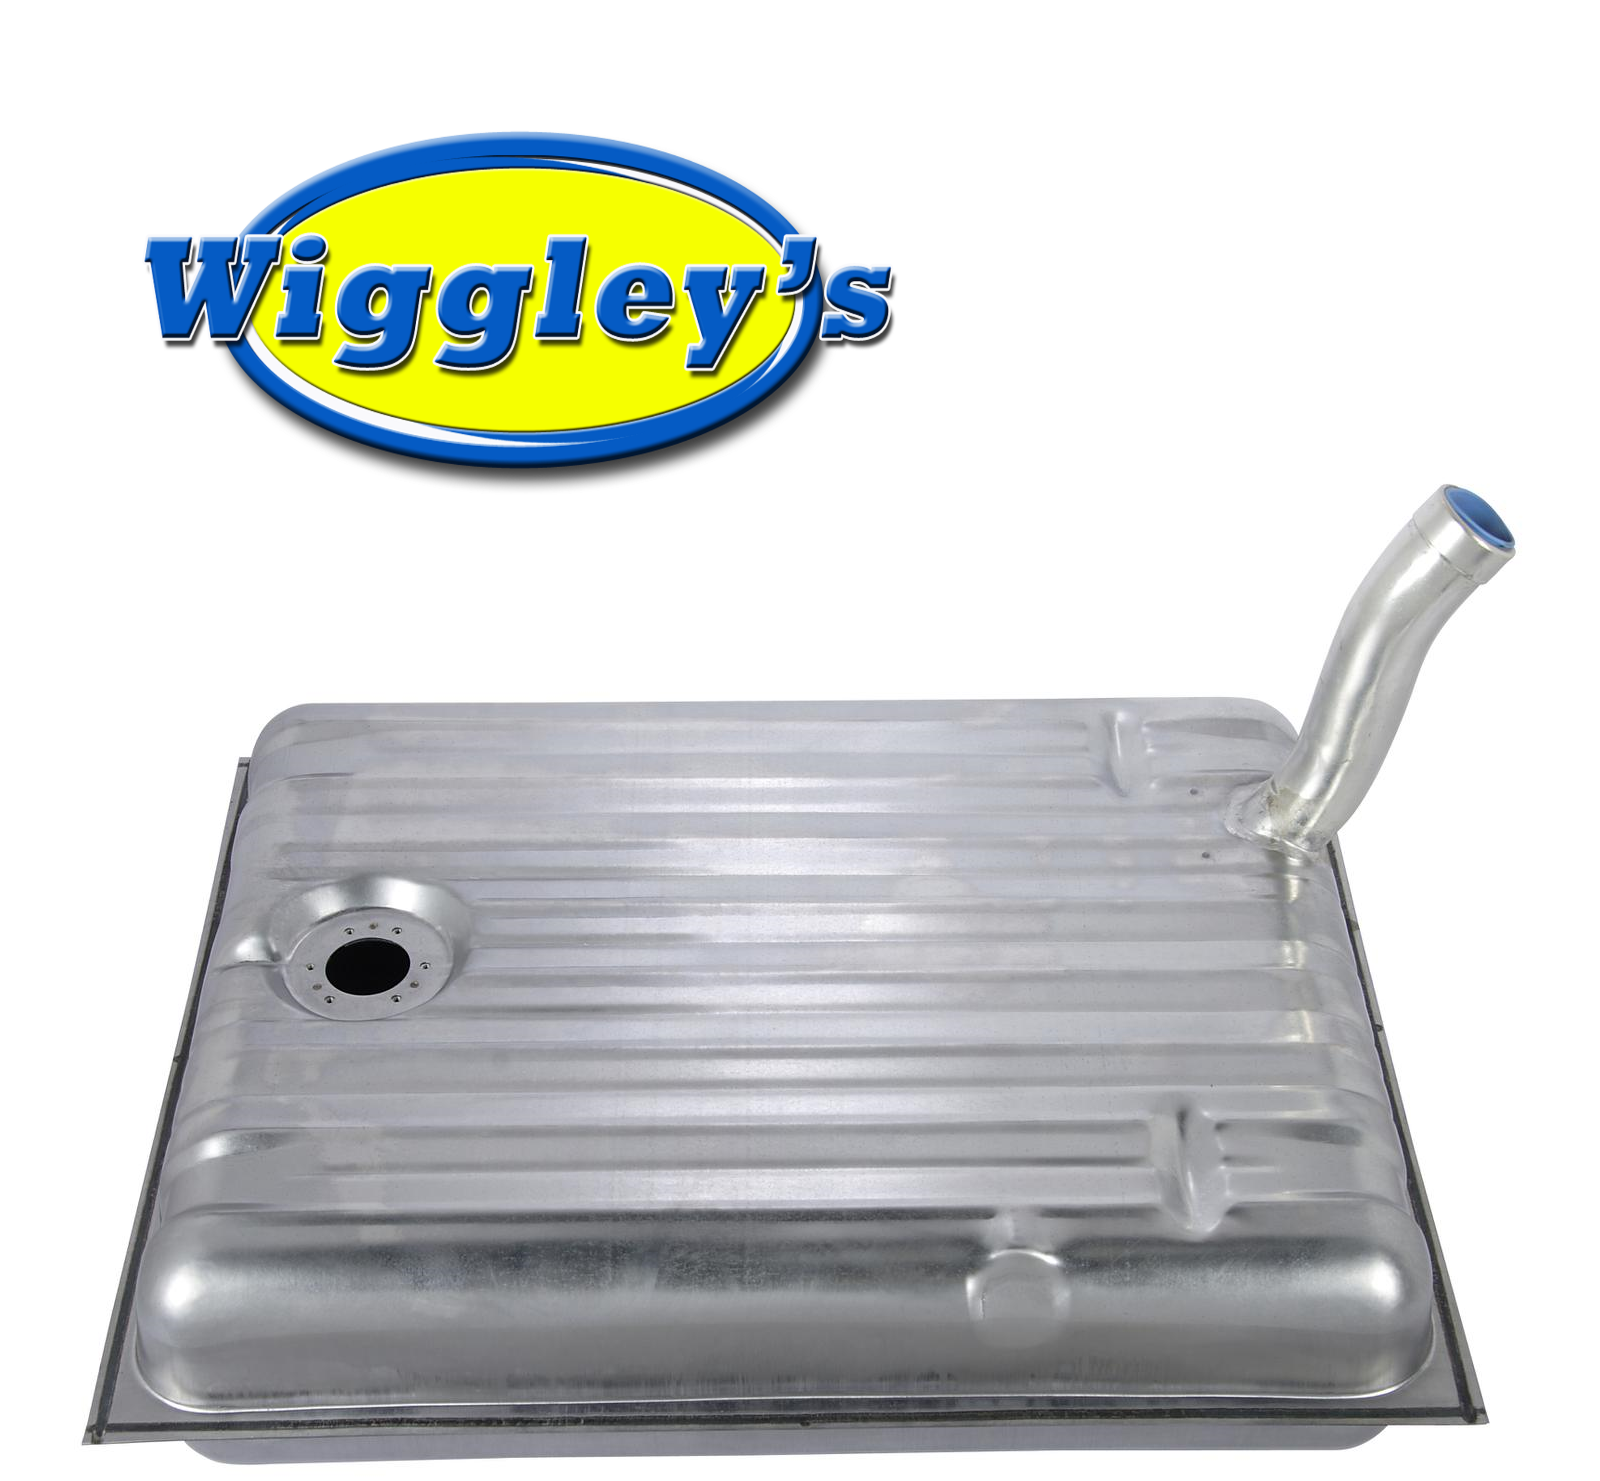 FUEL TANK LILAND F31A, IF31A FOR 55 FORD THUNDERBIRD V8 4.4L 4.8L